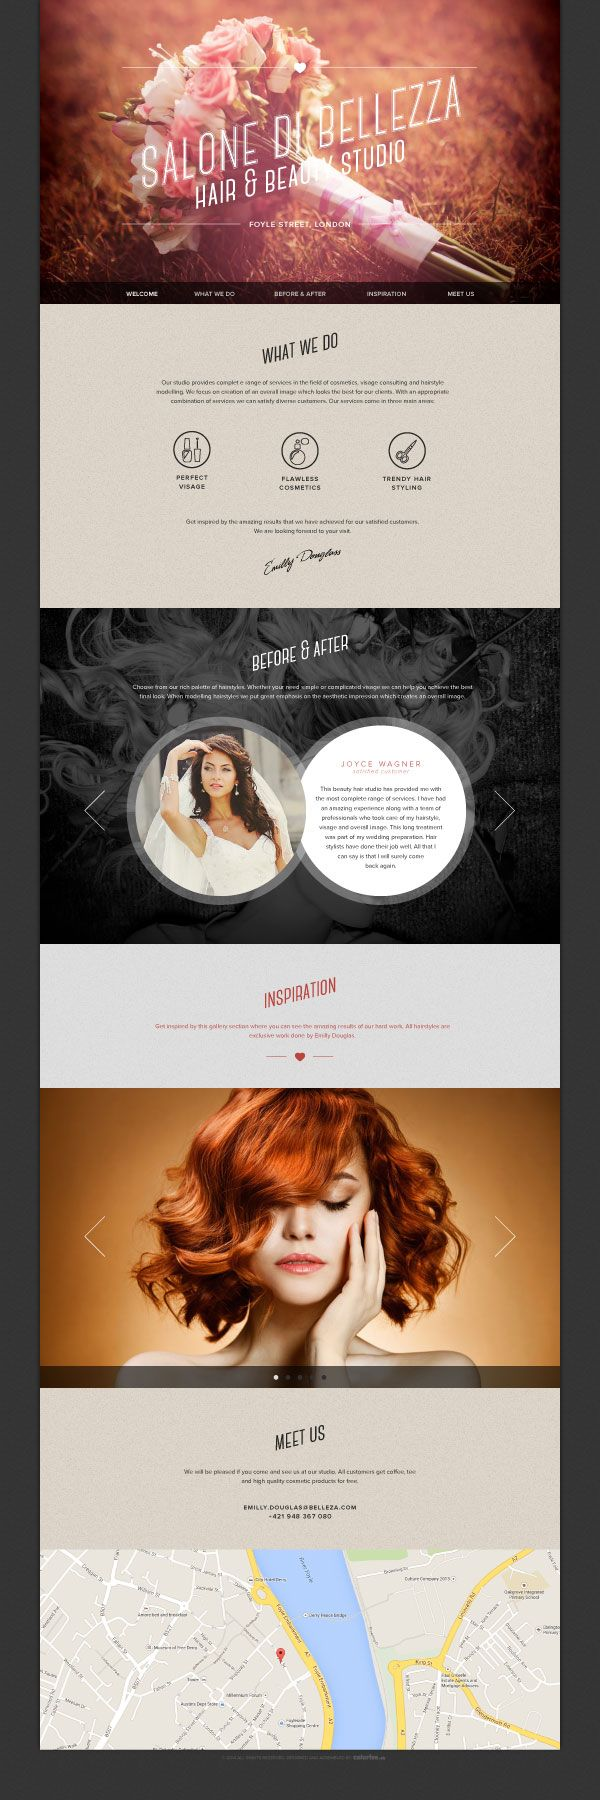 Design a Minimalist Hair Salon Website in Adobe Illustrator